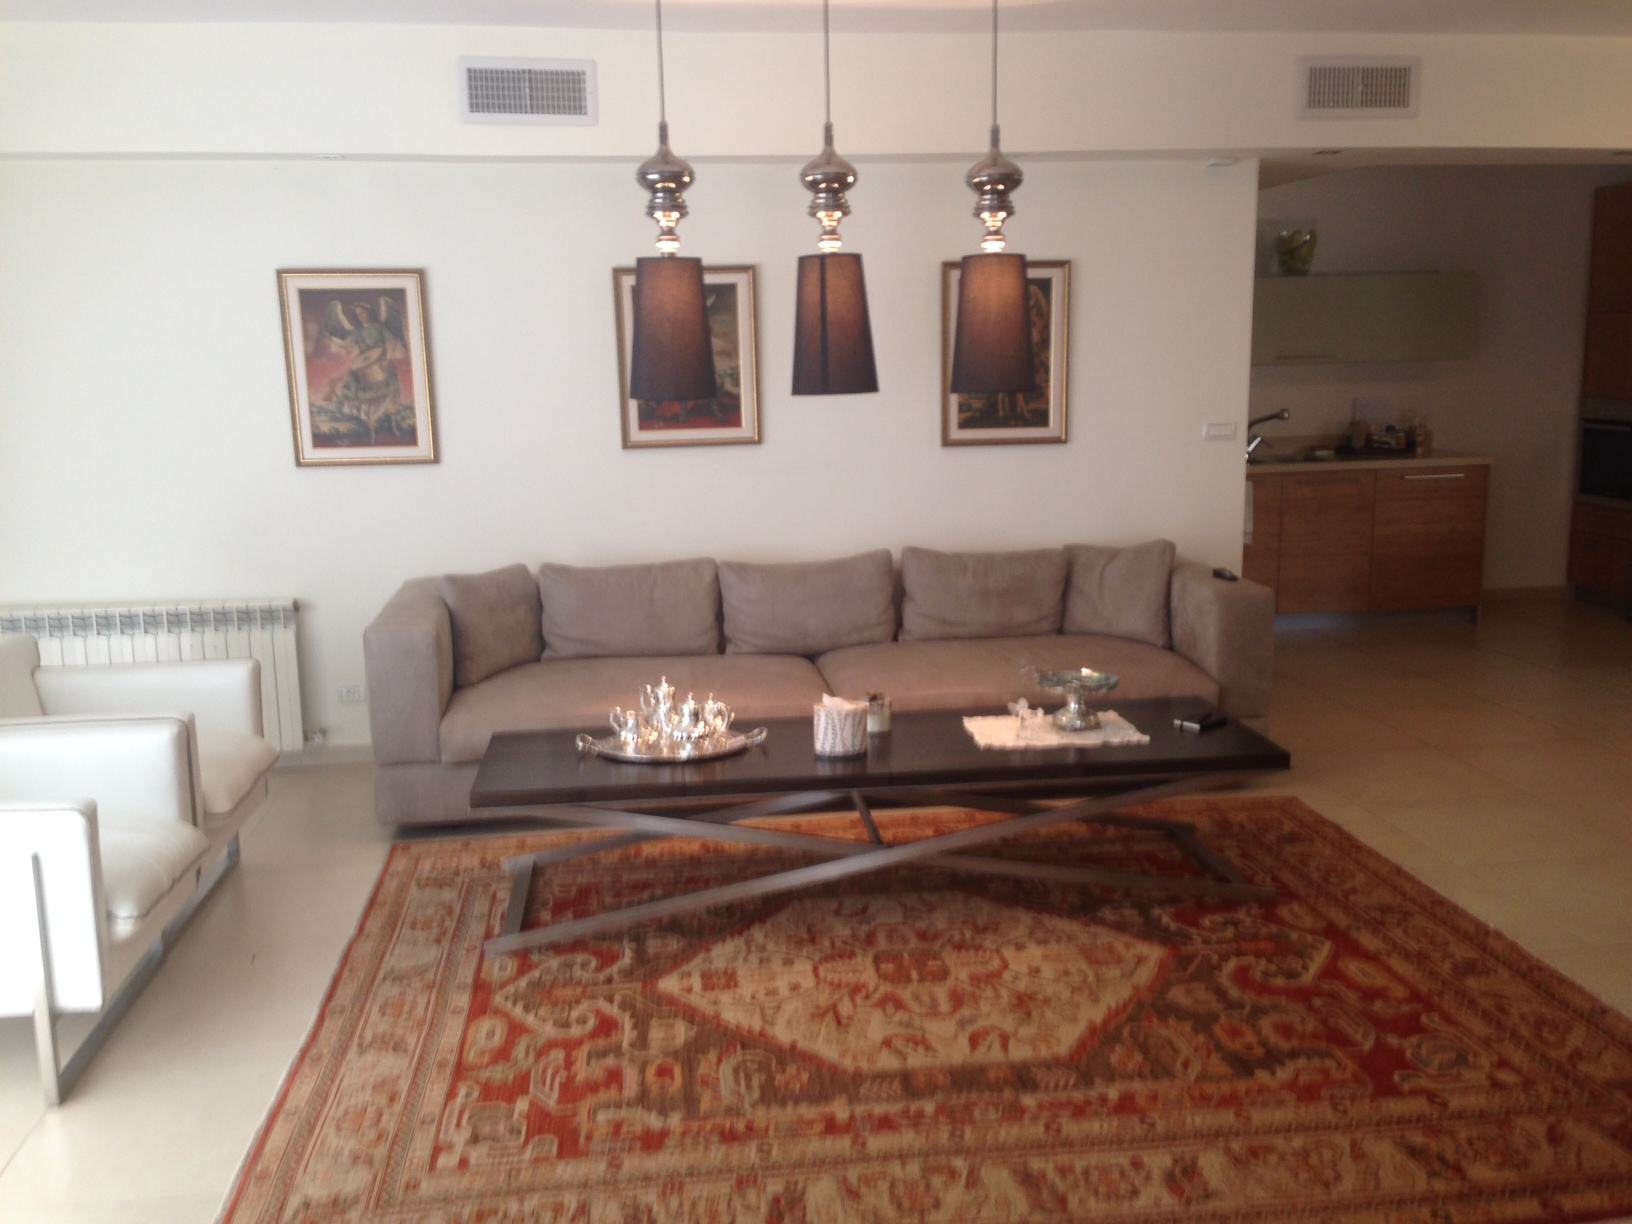 Elegant 1BR Apartment for Rent on David HaMelekh Blvd. in Central Tel Aviv